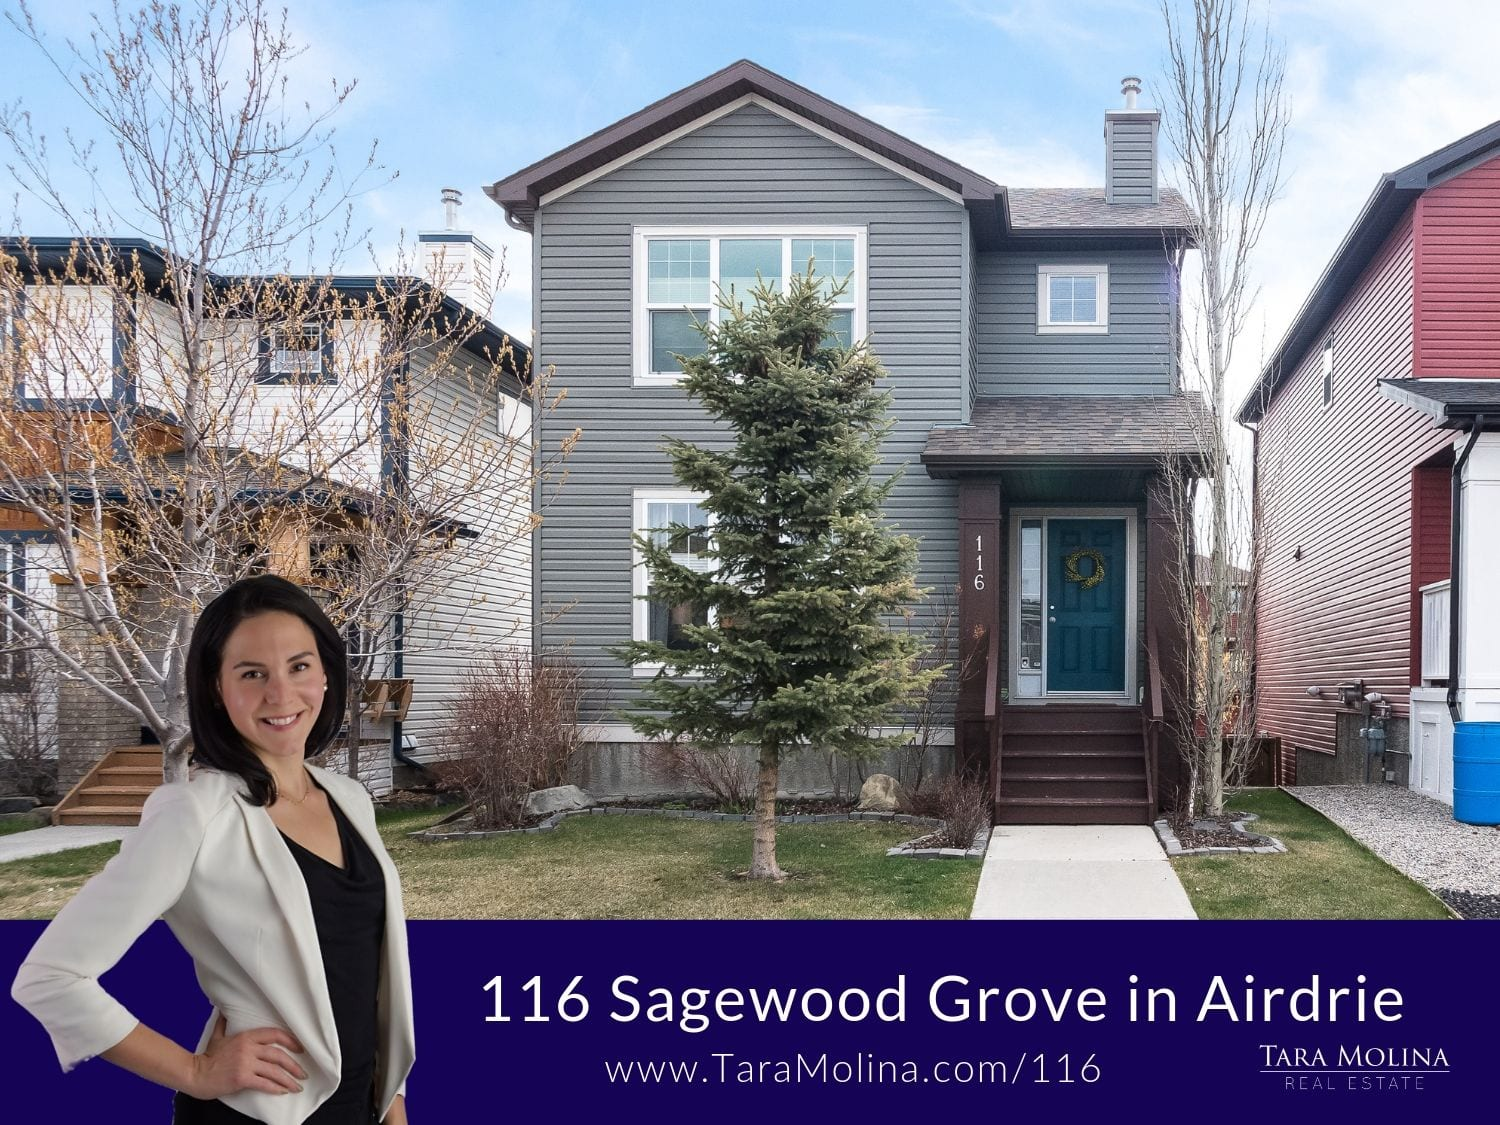 116 Sagewood Grove in Airdrie